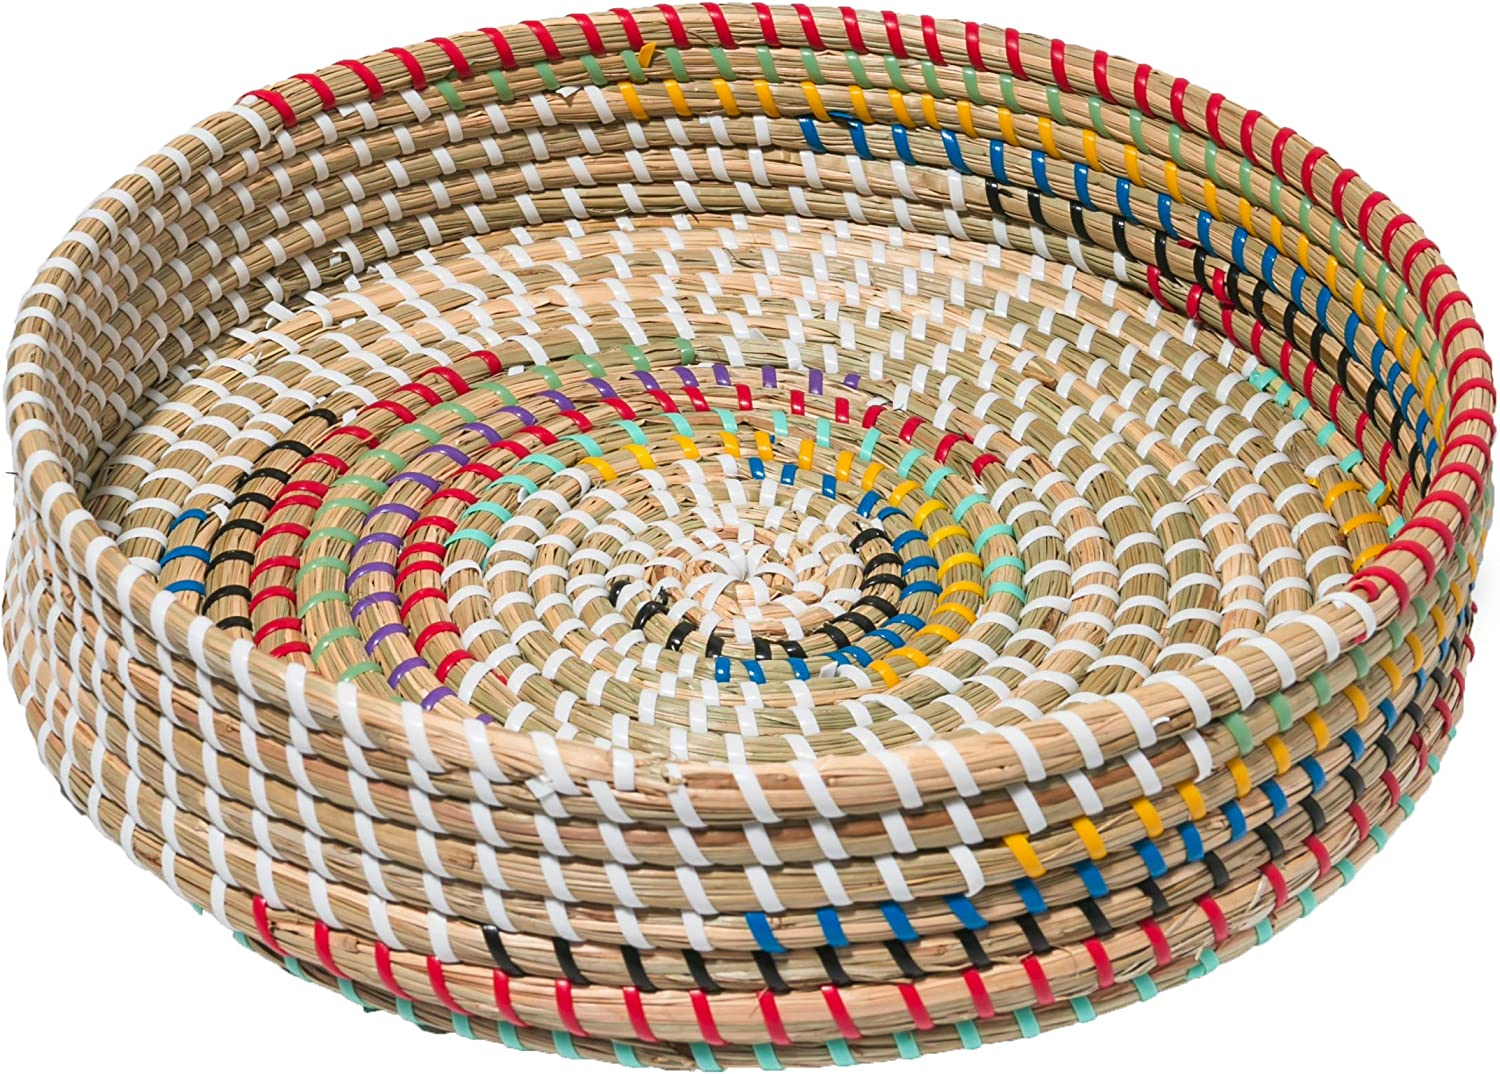 Round Woven Seagrass Tray Wall Decor Wicker Fruit Snack Serving Bowl Boho Wall Decor for Living Room Grocery Basket User